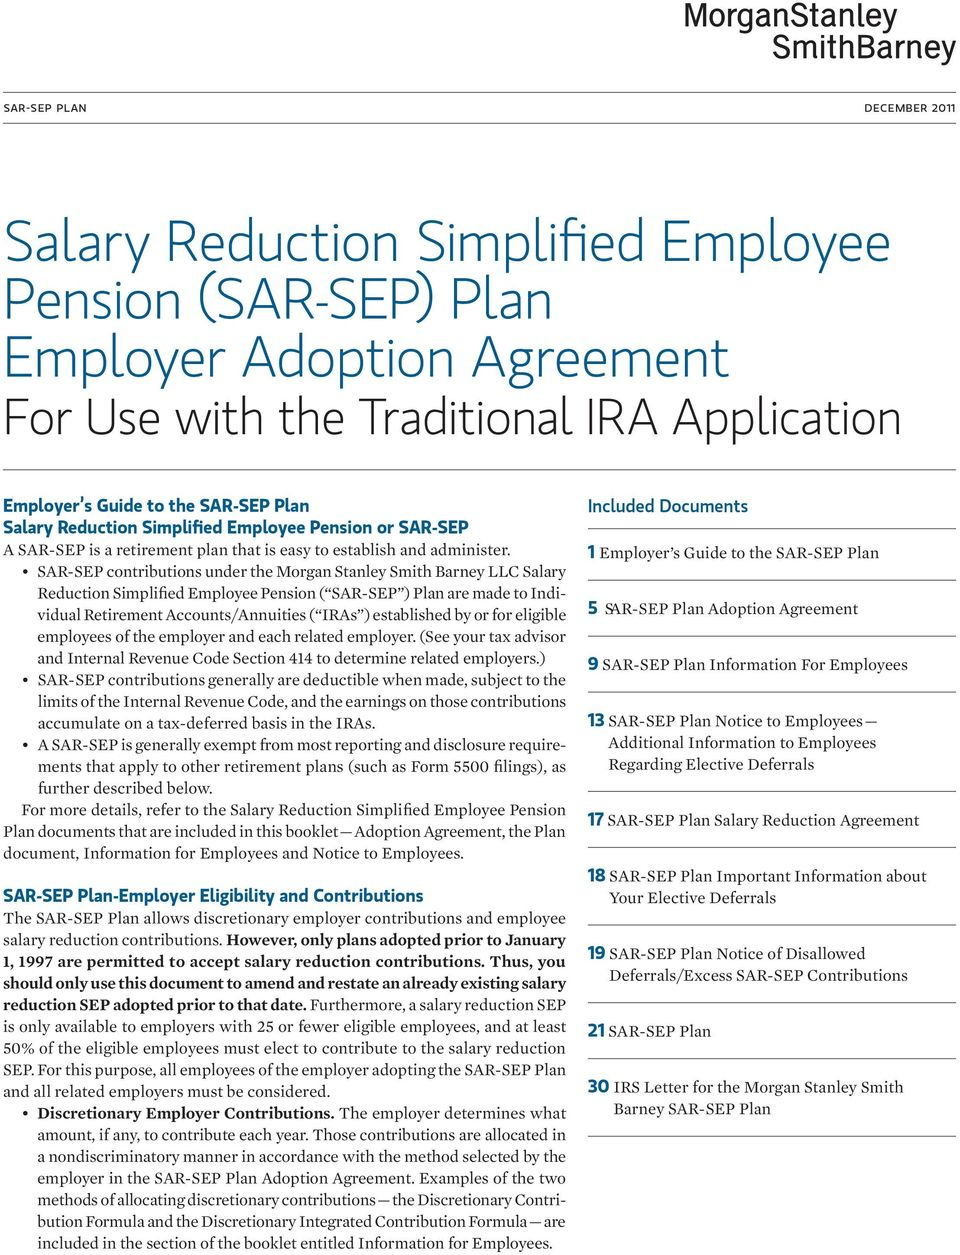 SAR-SEP contributions under the Morgan Stanley Smith Barney LLC Salary Reduction Simplified Employee Pension ( SAR-SEP ) Plan are made to Individual Retirement Accounts/Annuities ( IRAs ) established